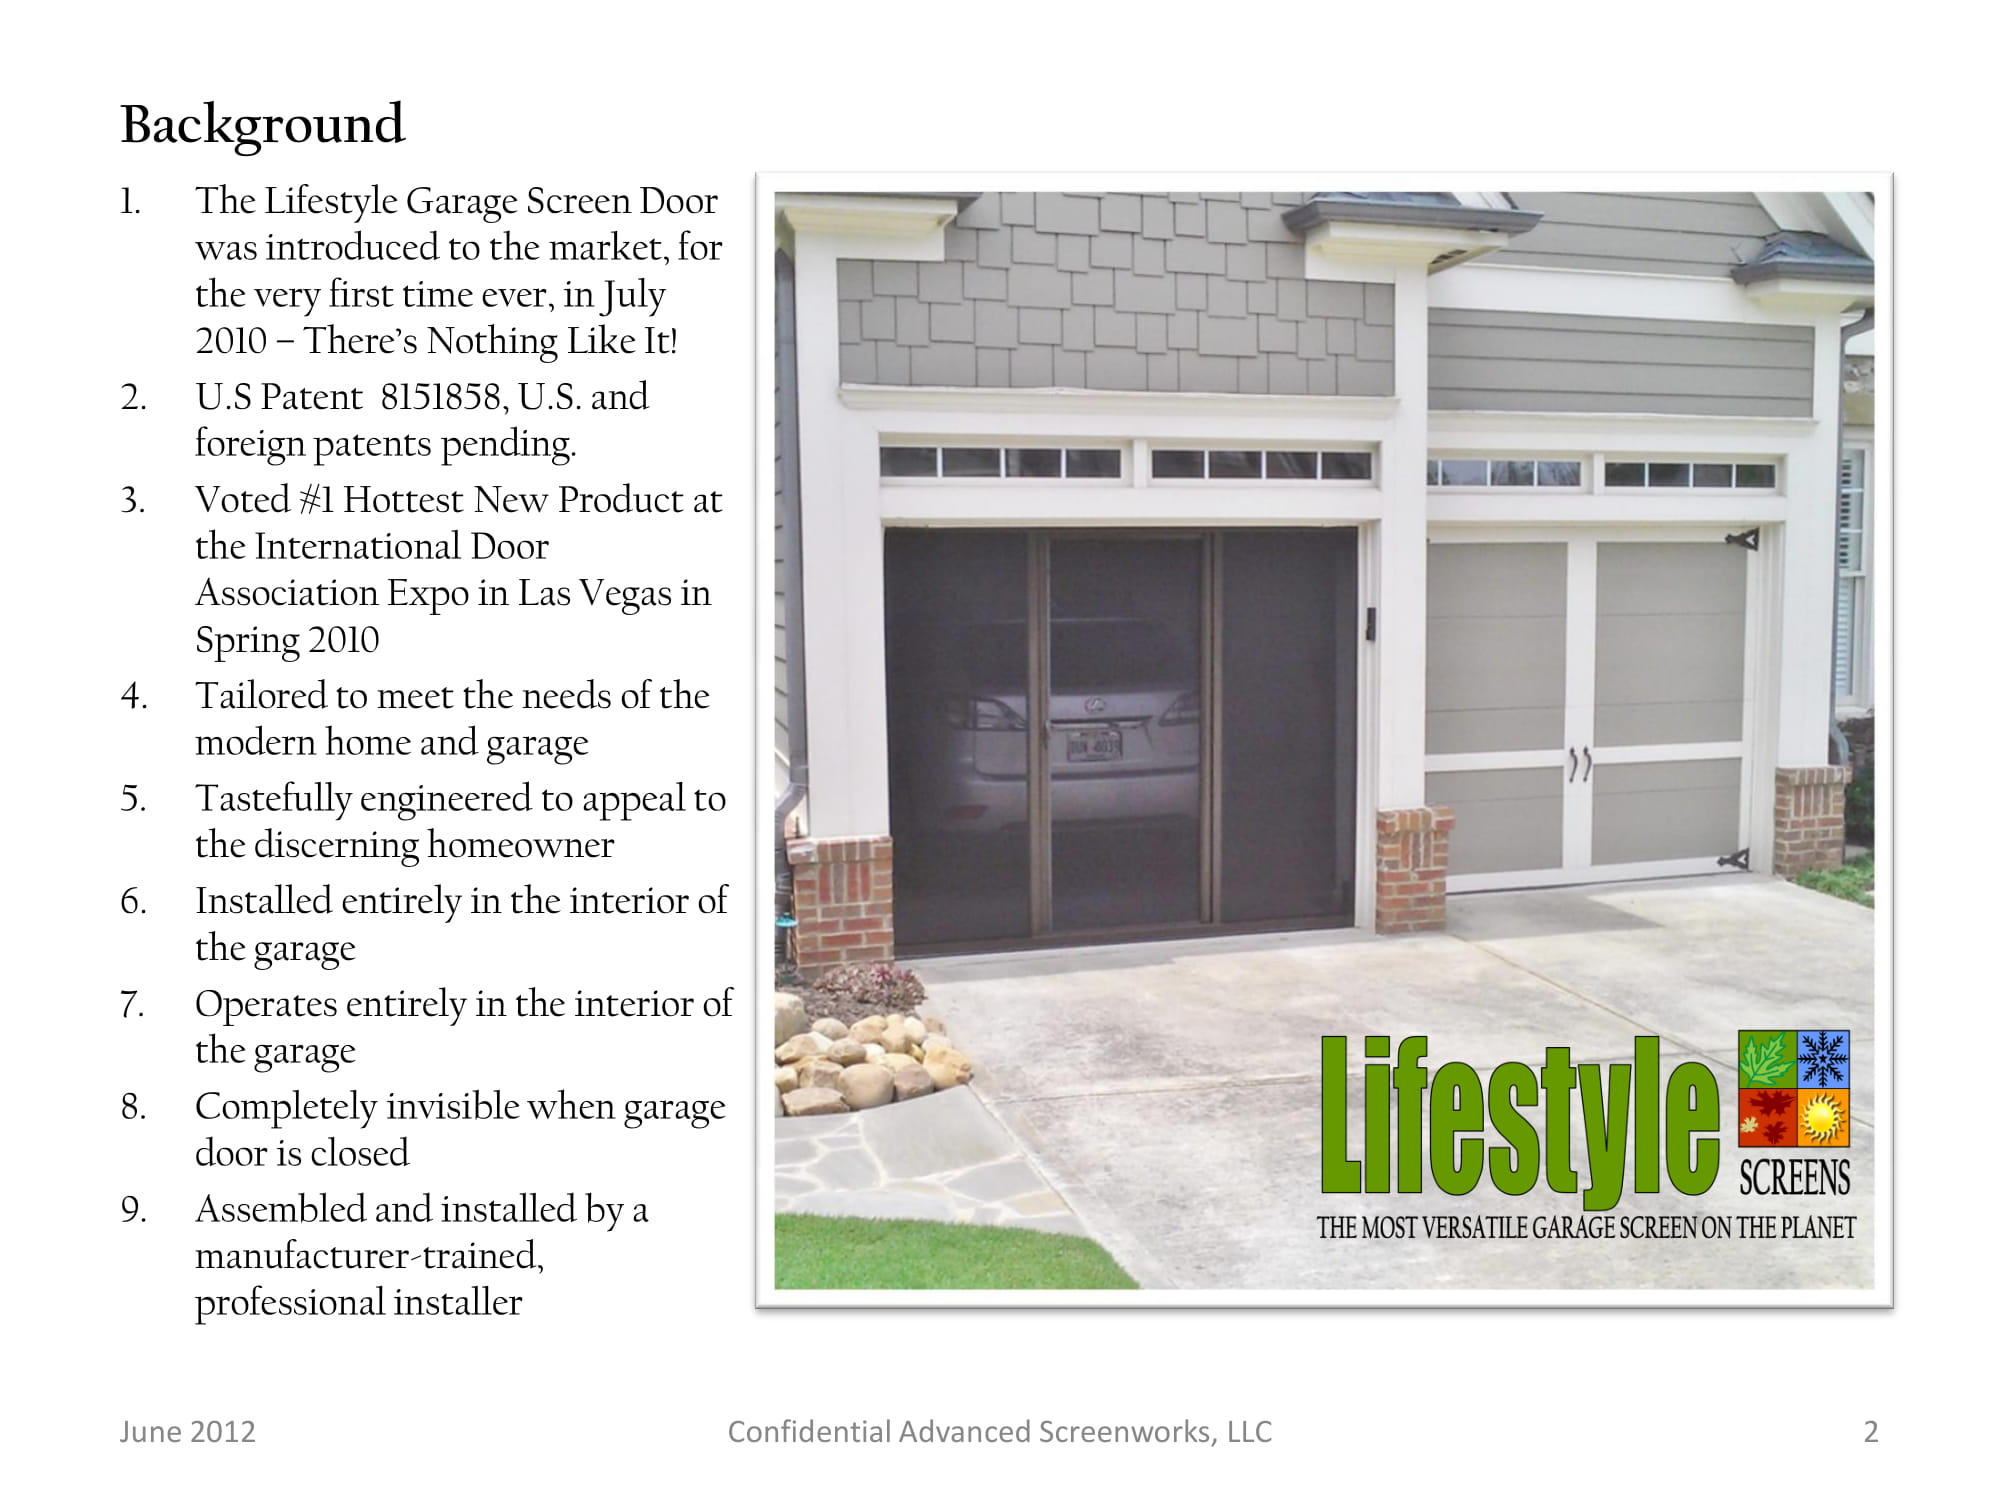 When Youu0027re Done Enjoying The Great Outdoors, Simply Retract Your Lifestyle Garage  Screen System And Close Your Garage Door As Usual. Itu0027s Just That Easy!